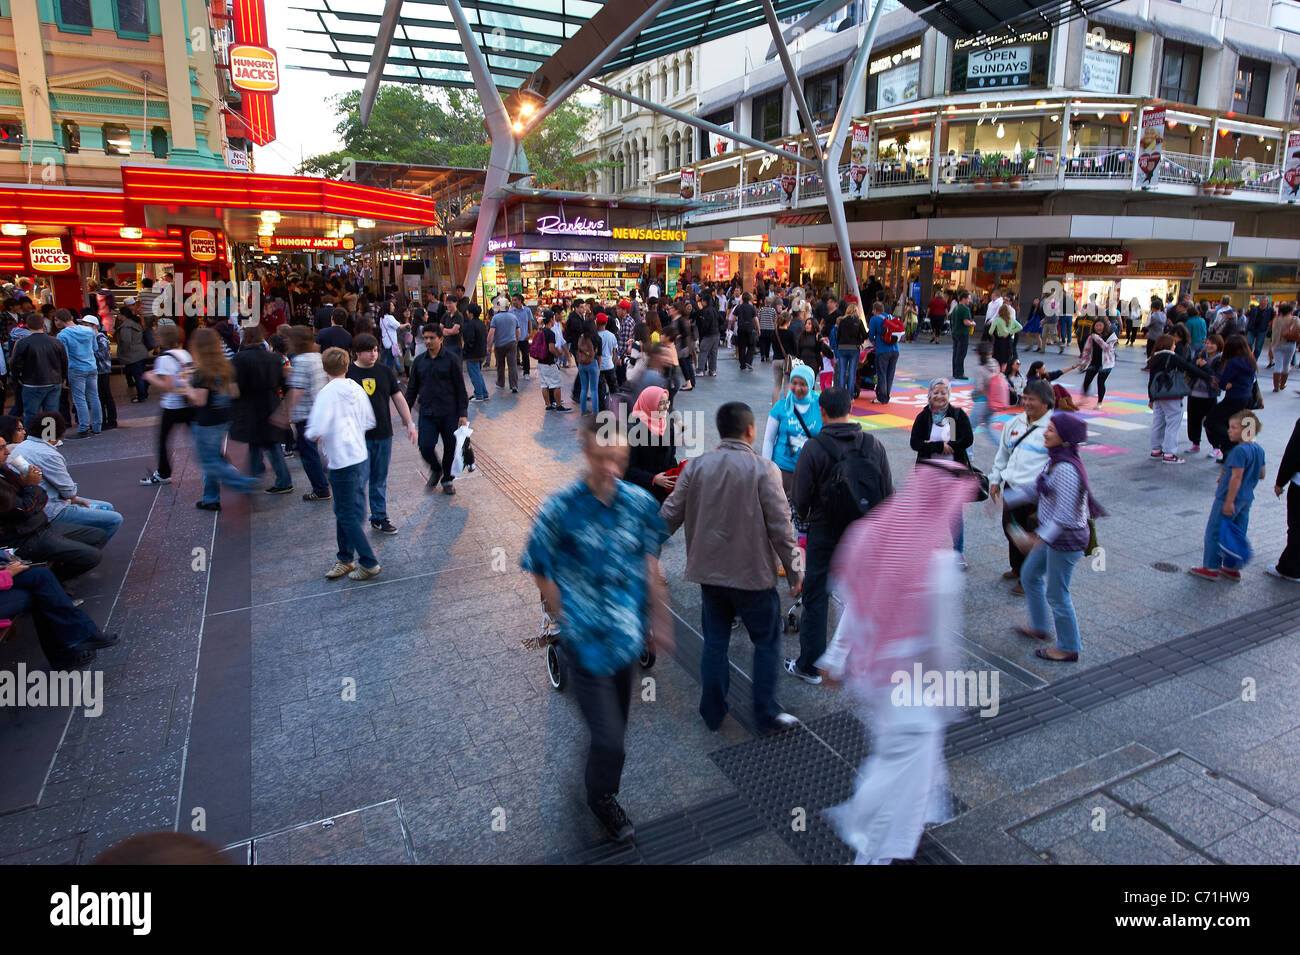 Queen Street Mall, Brisbane Australia - Stock Image